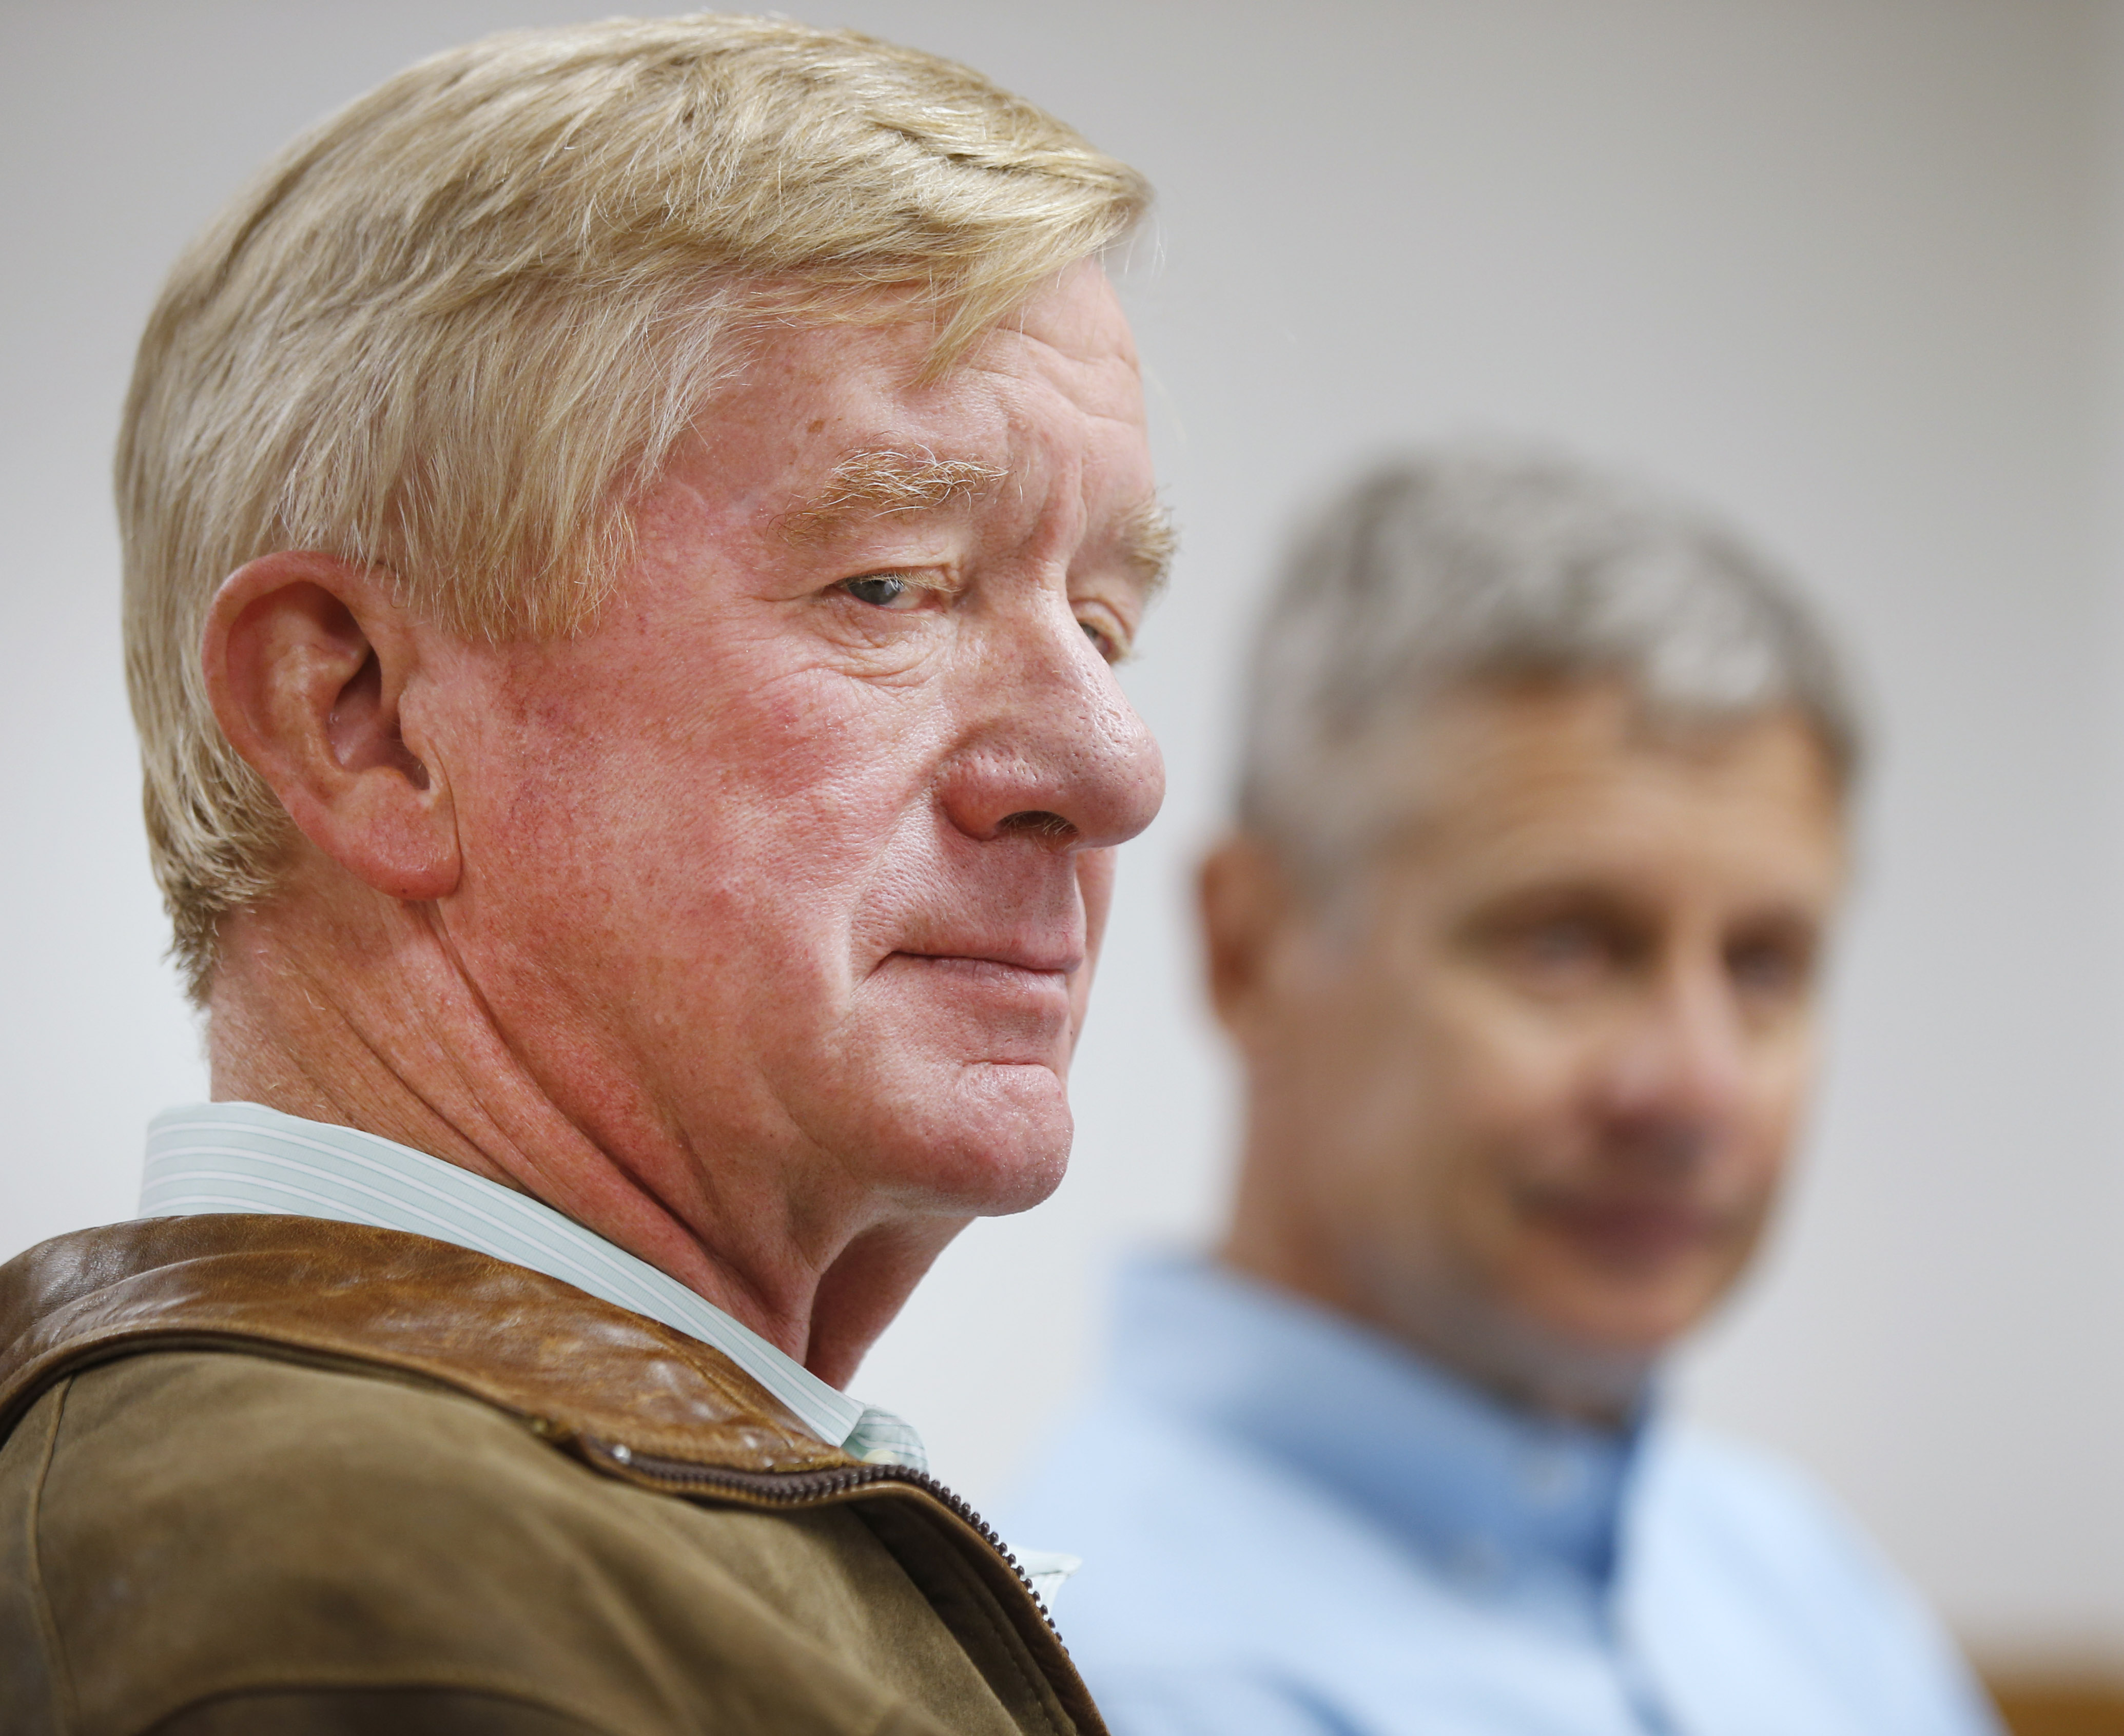 Libertarian presidential candidate Gary Johnson (R), and his running mate Bill Weld (L), talk to the press before a rally on August 6, 2016 in Salt Lake City, Utah.